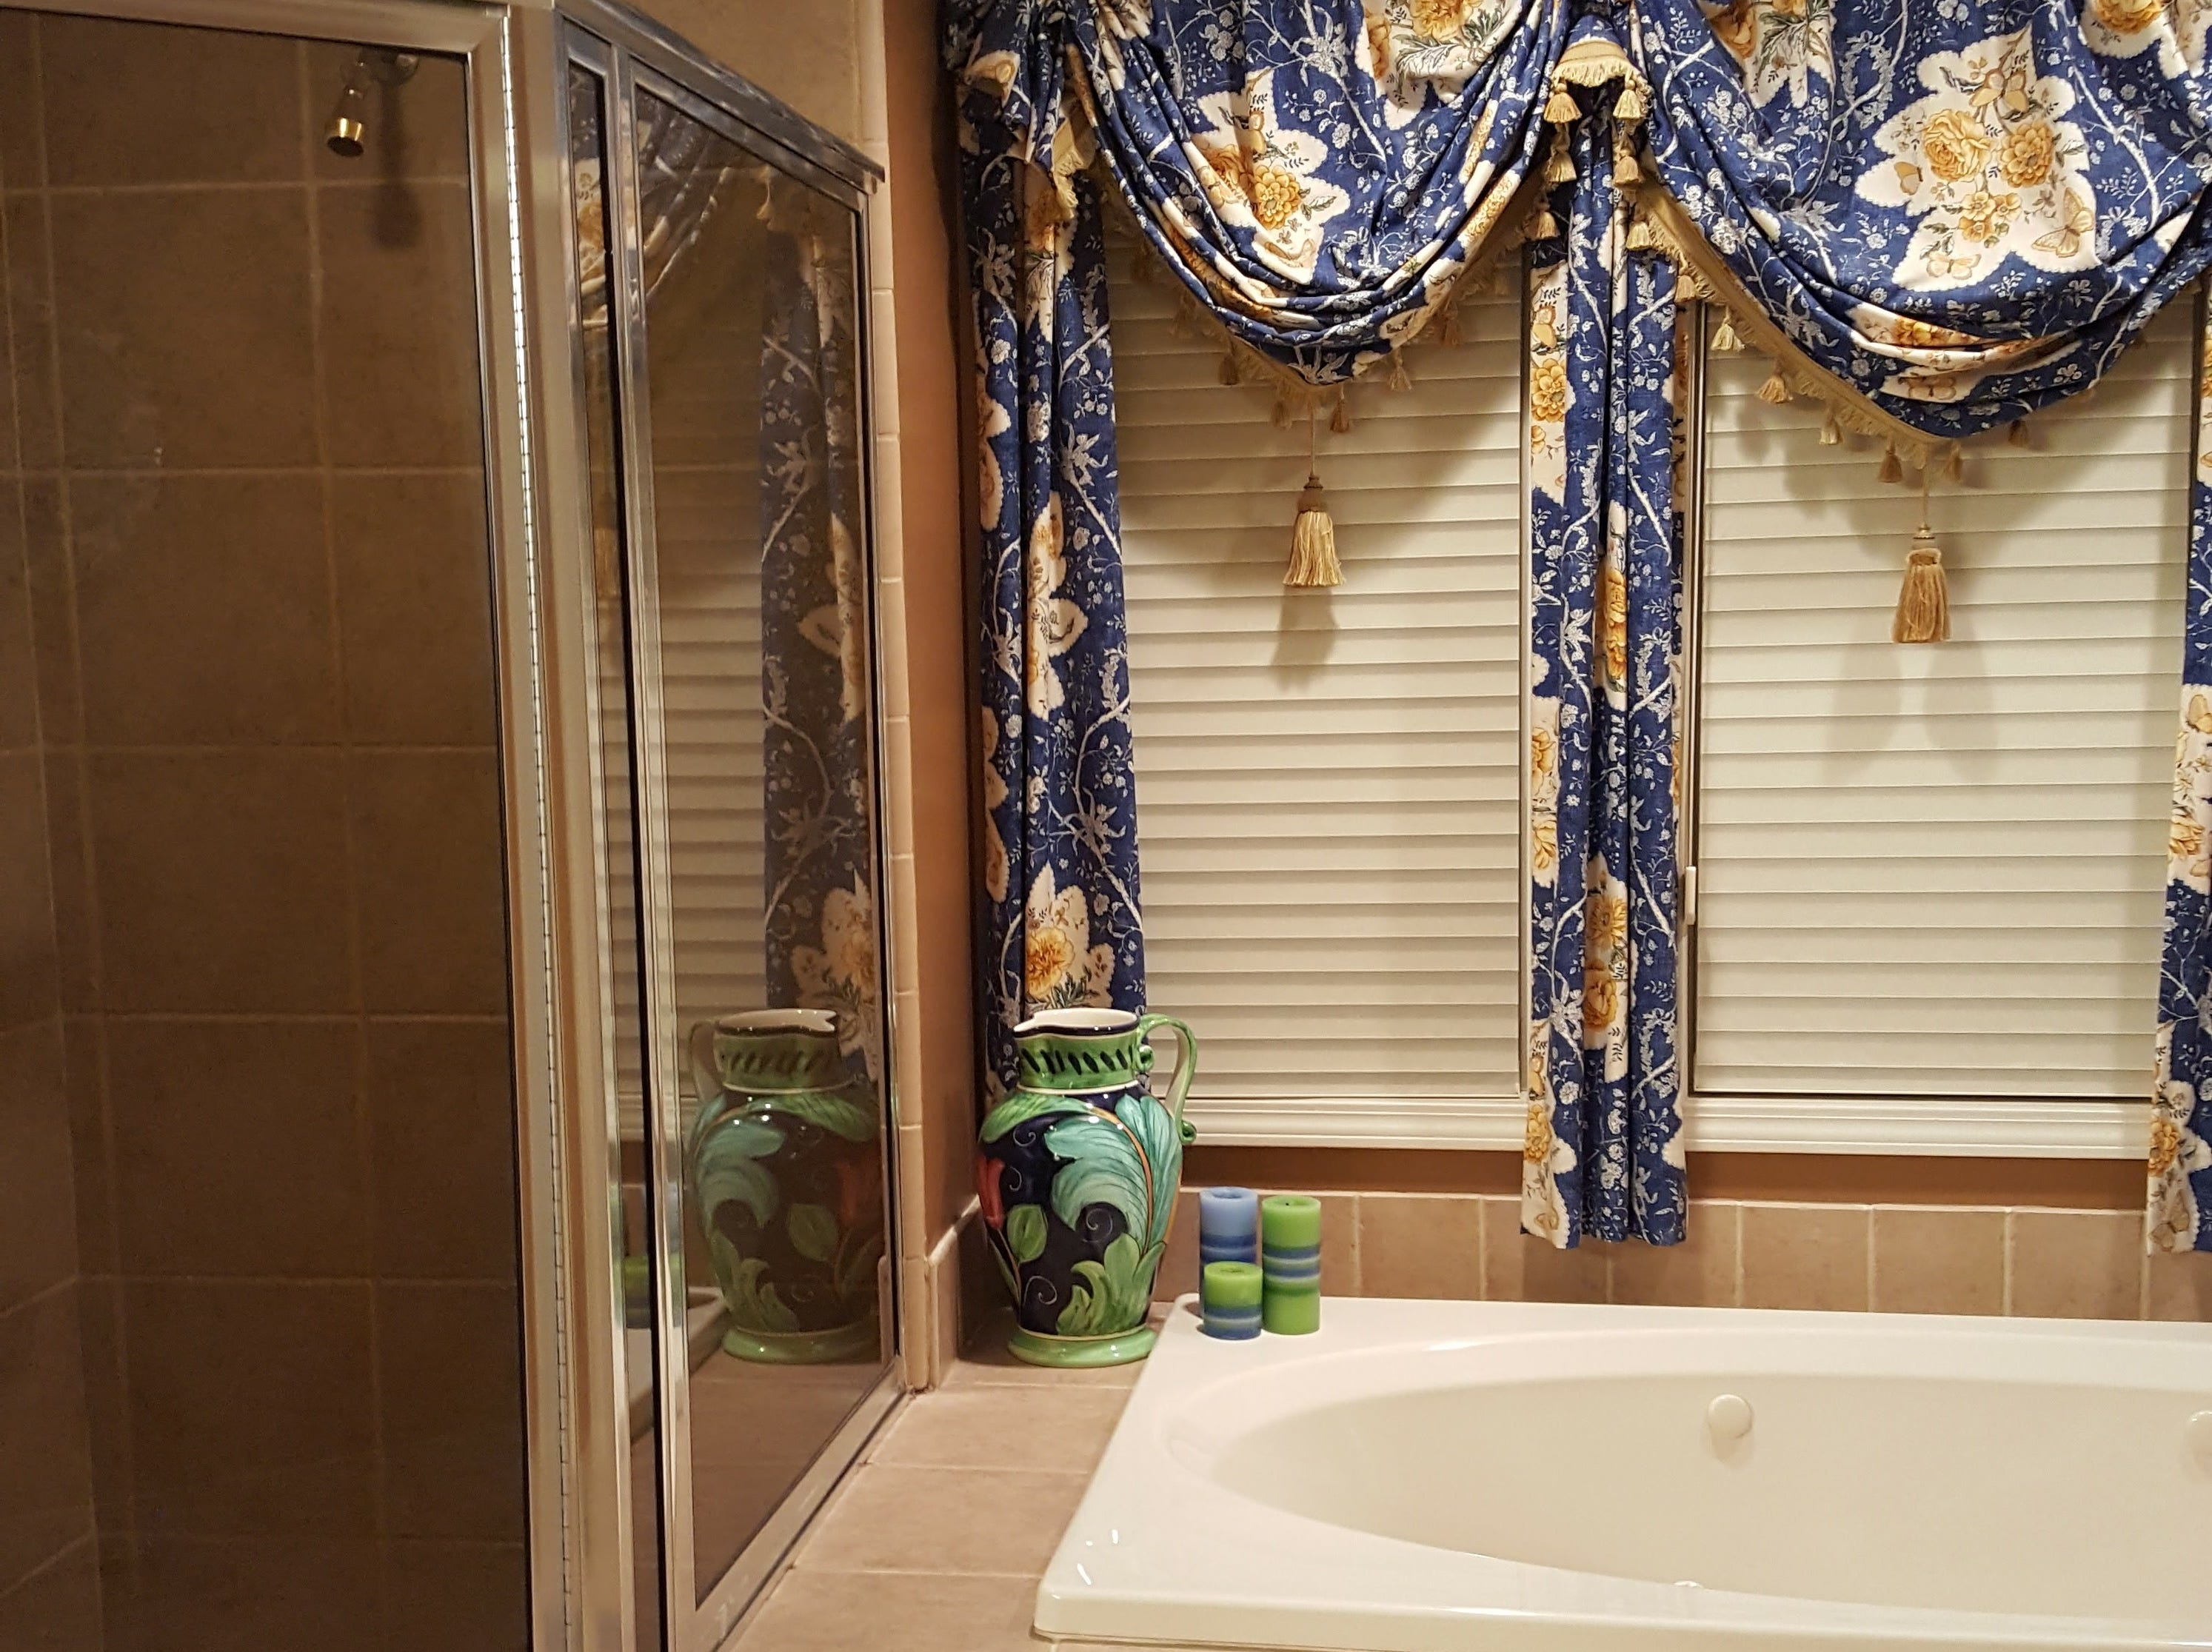 Patricia Warner's original Mediterranean-style master bath featured a Jacuzzi tub that was rarely used and took up a lot of space.